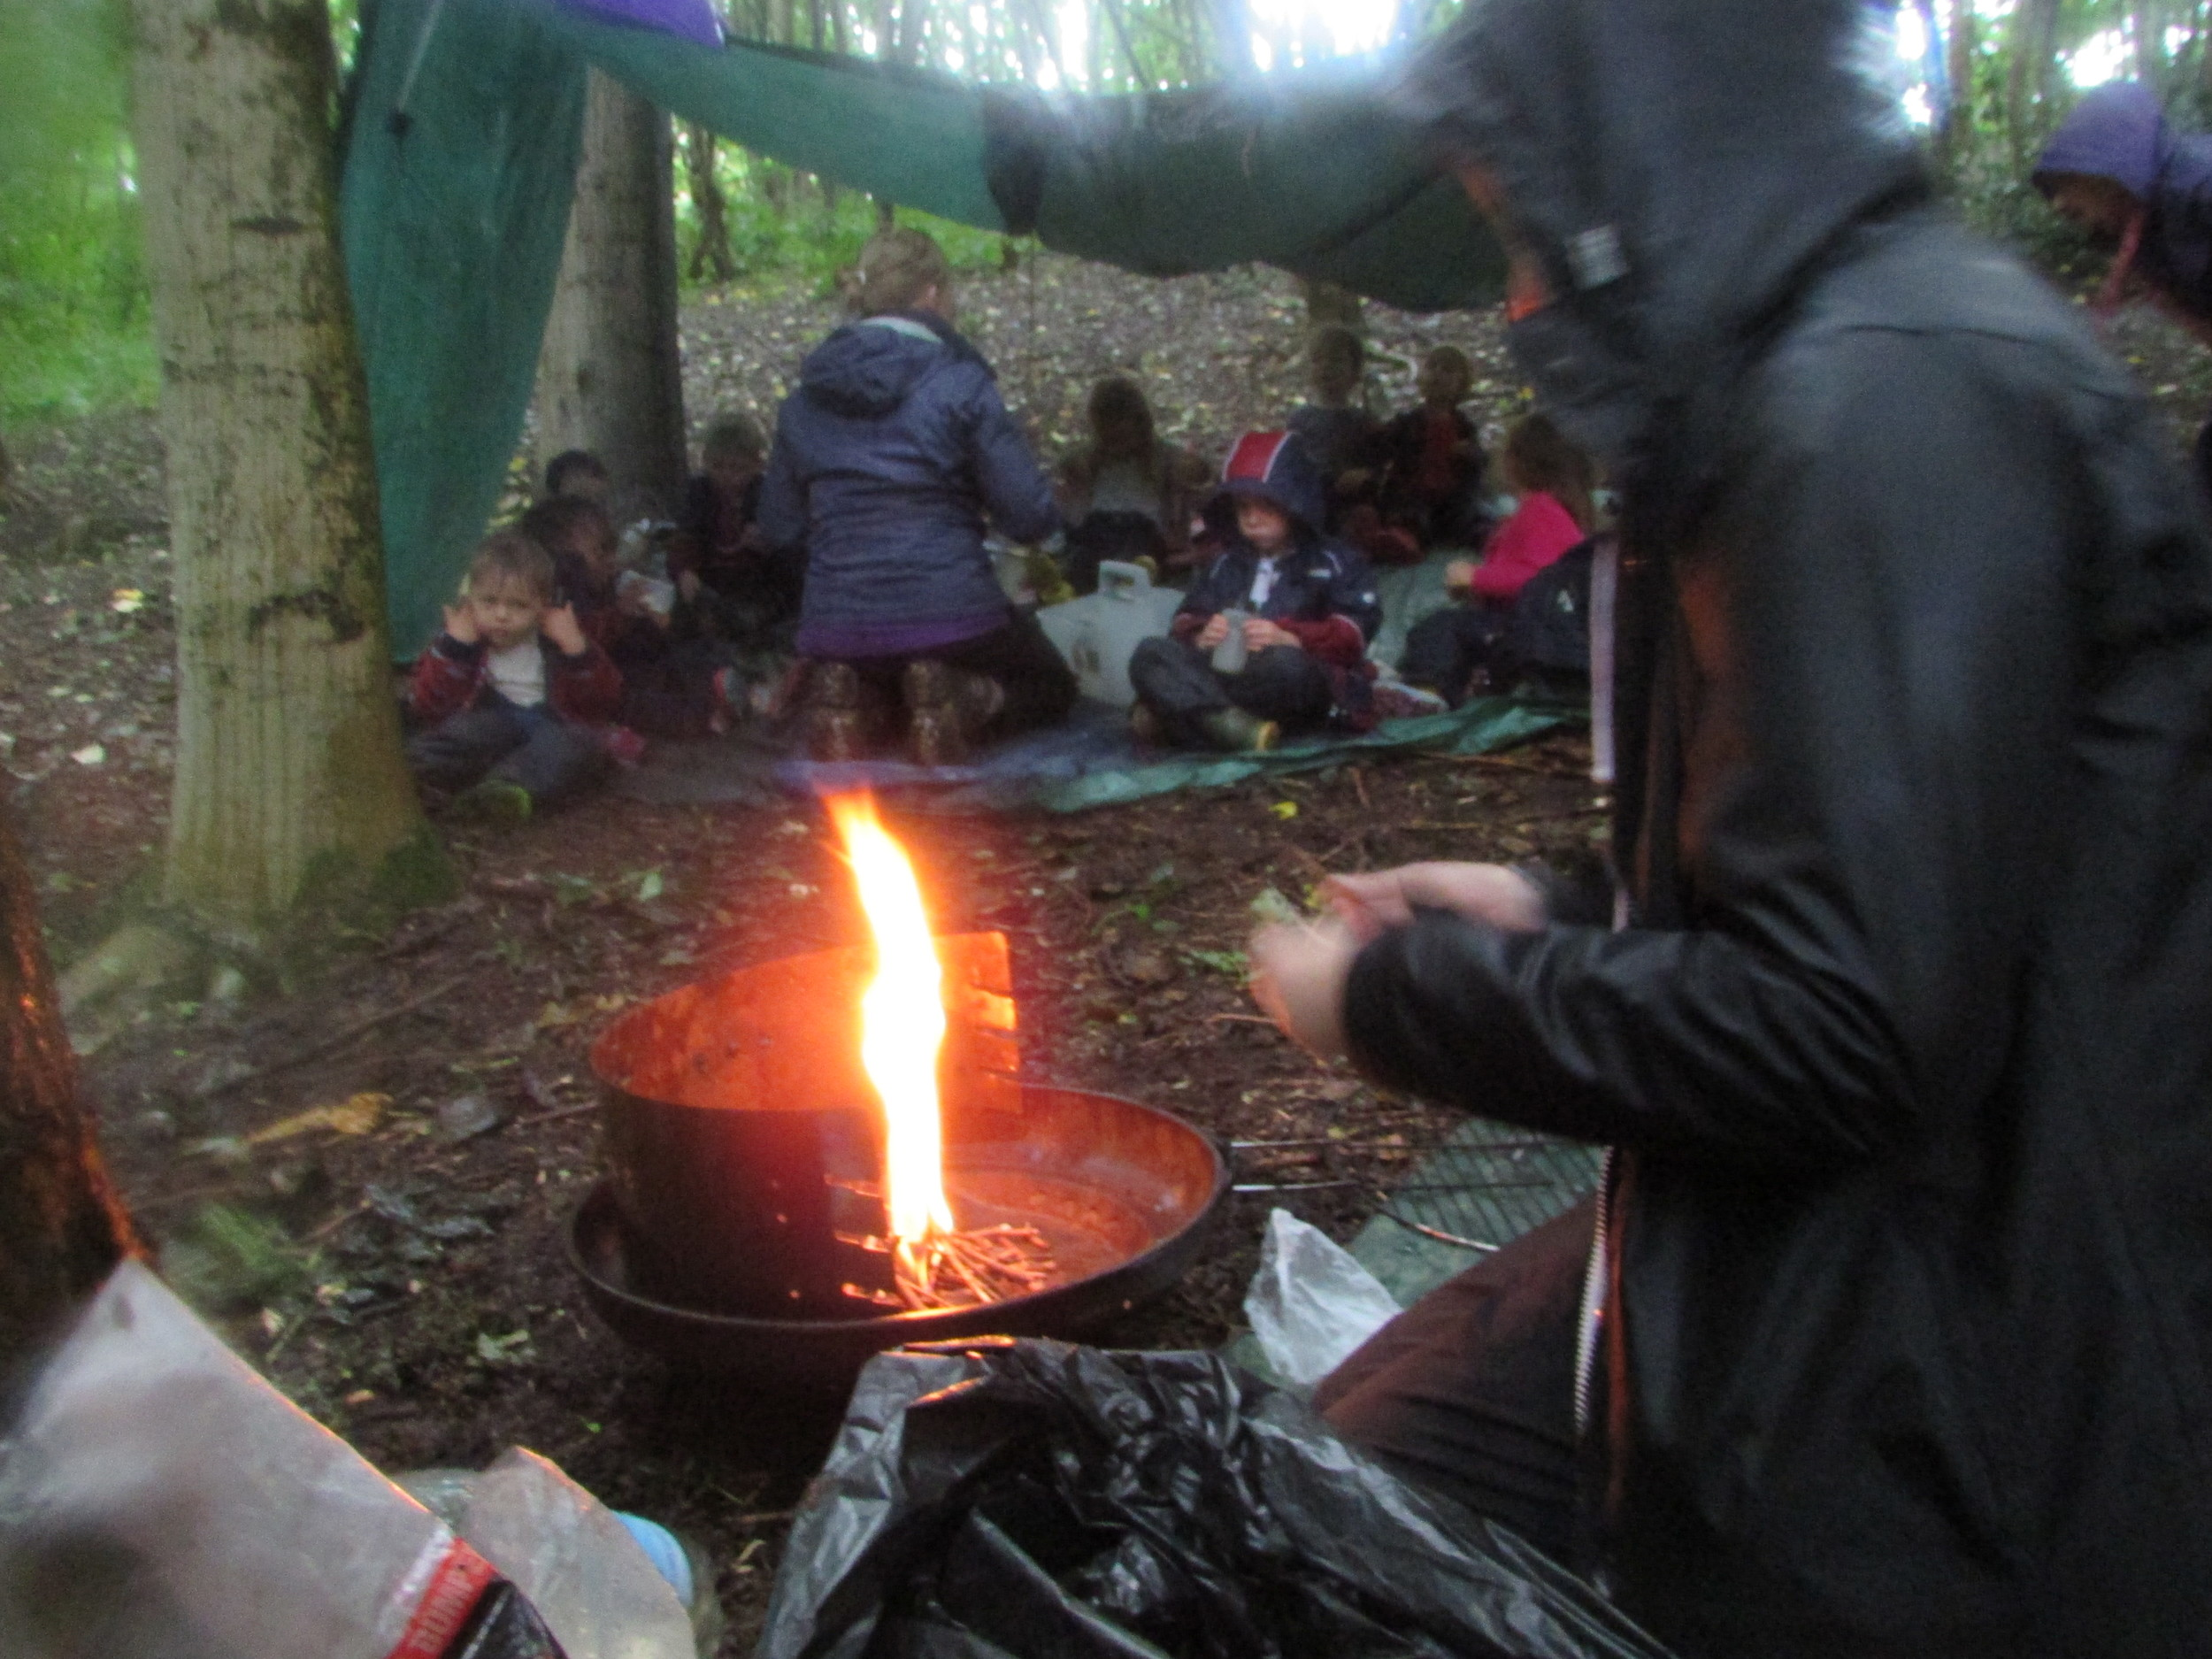 When it's raining but it's time for lunch, a well built shelter prevents soggy sandwiches!